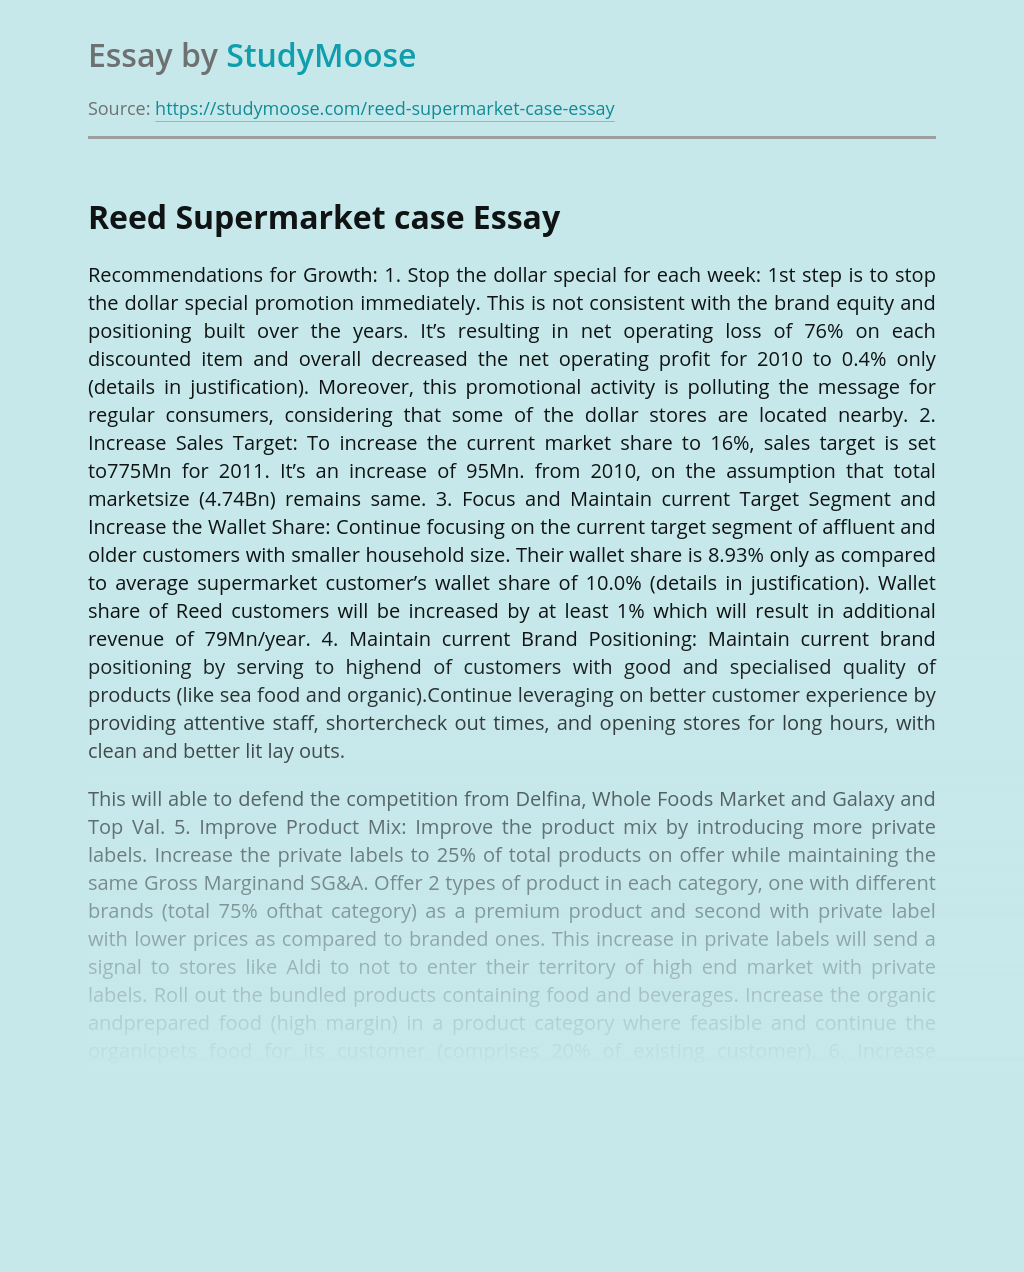 Reed Supermarket Business Recommendations